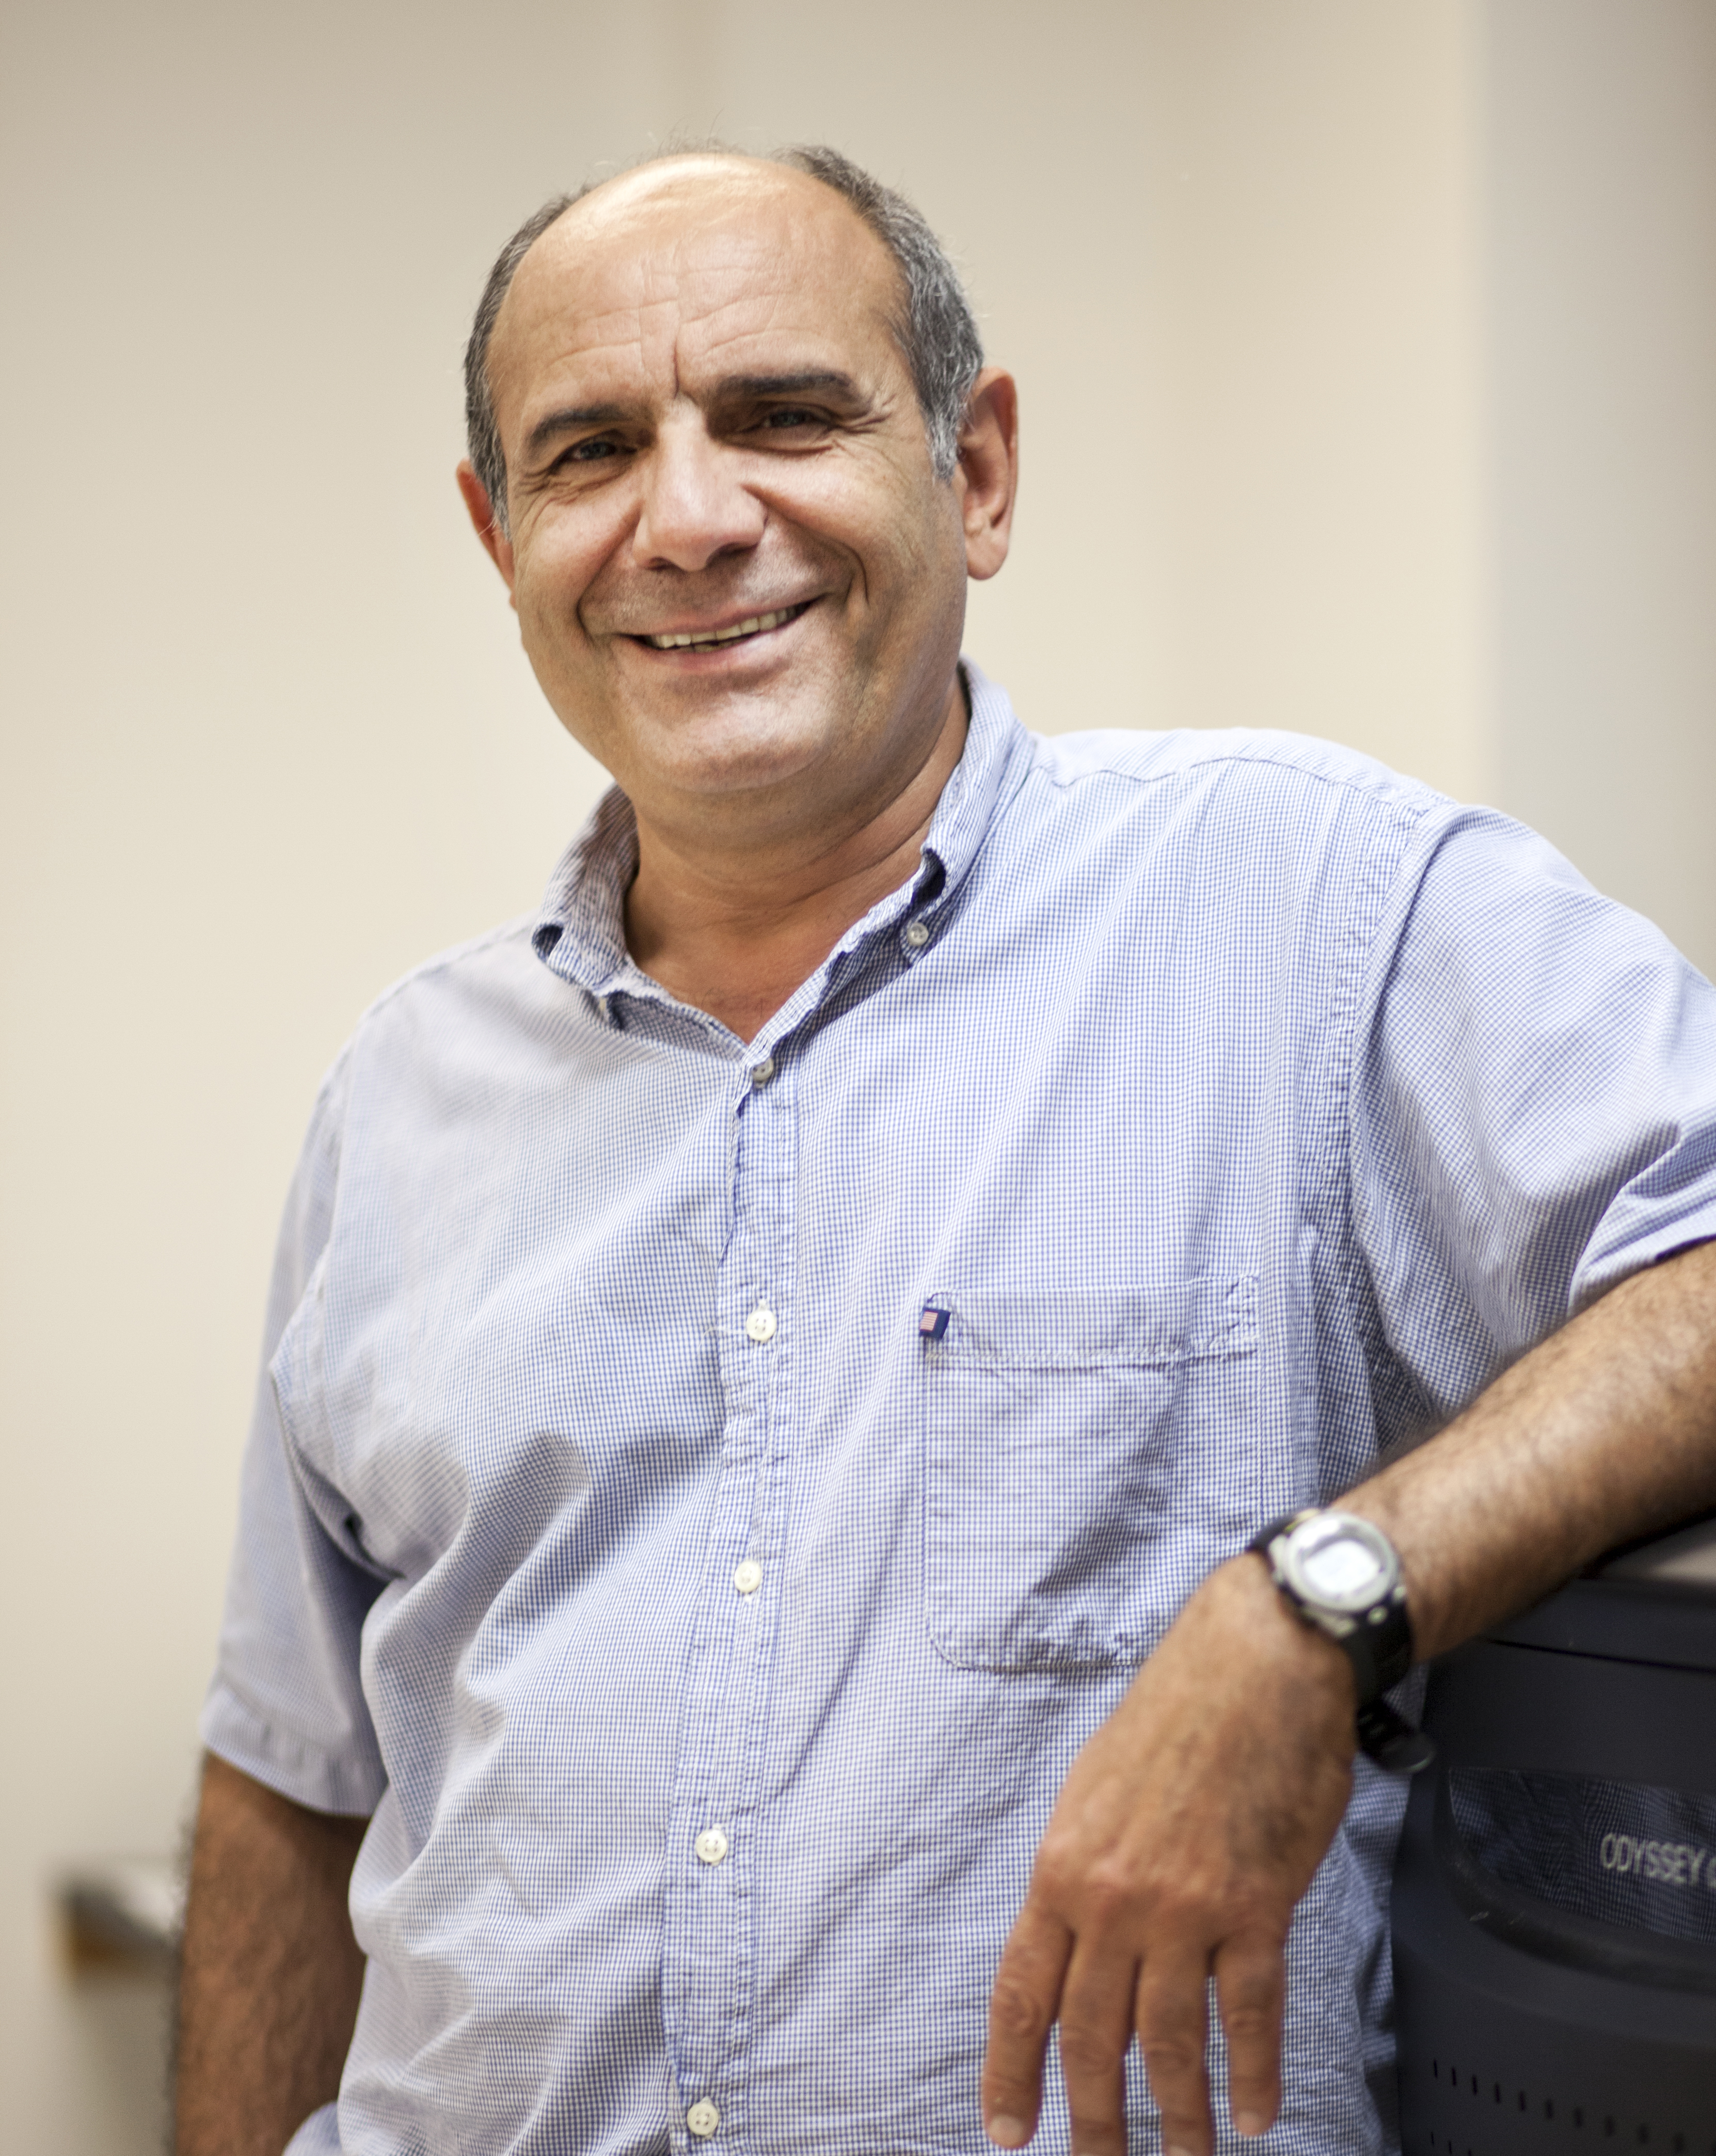 Mansour Mohamadzadeh, PhD